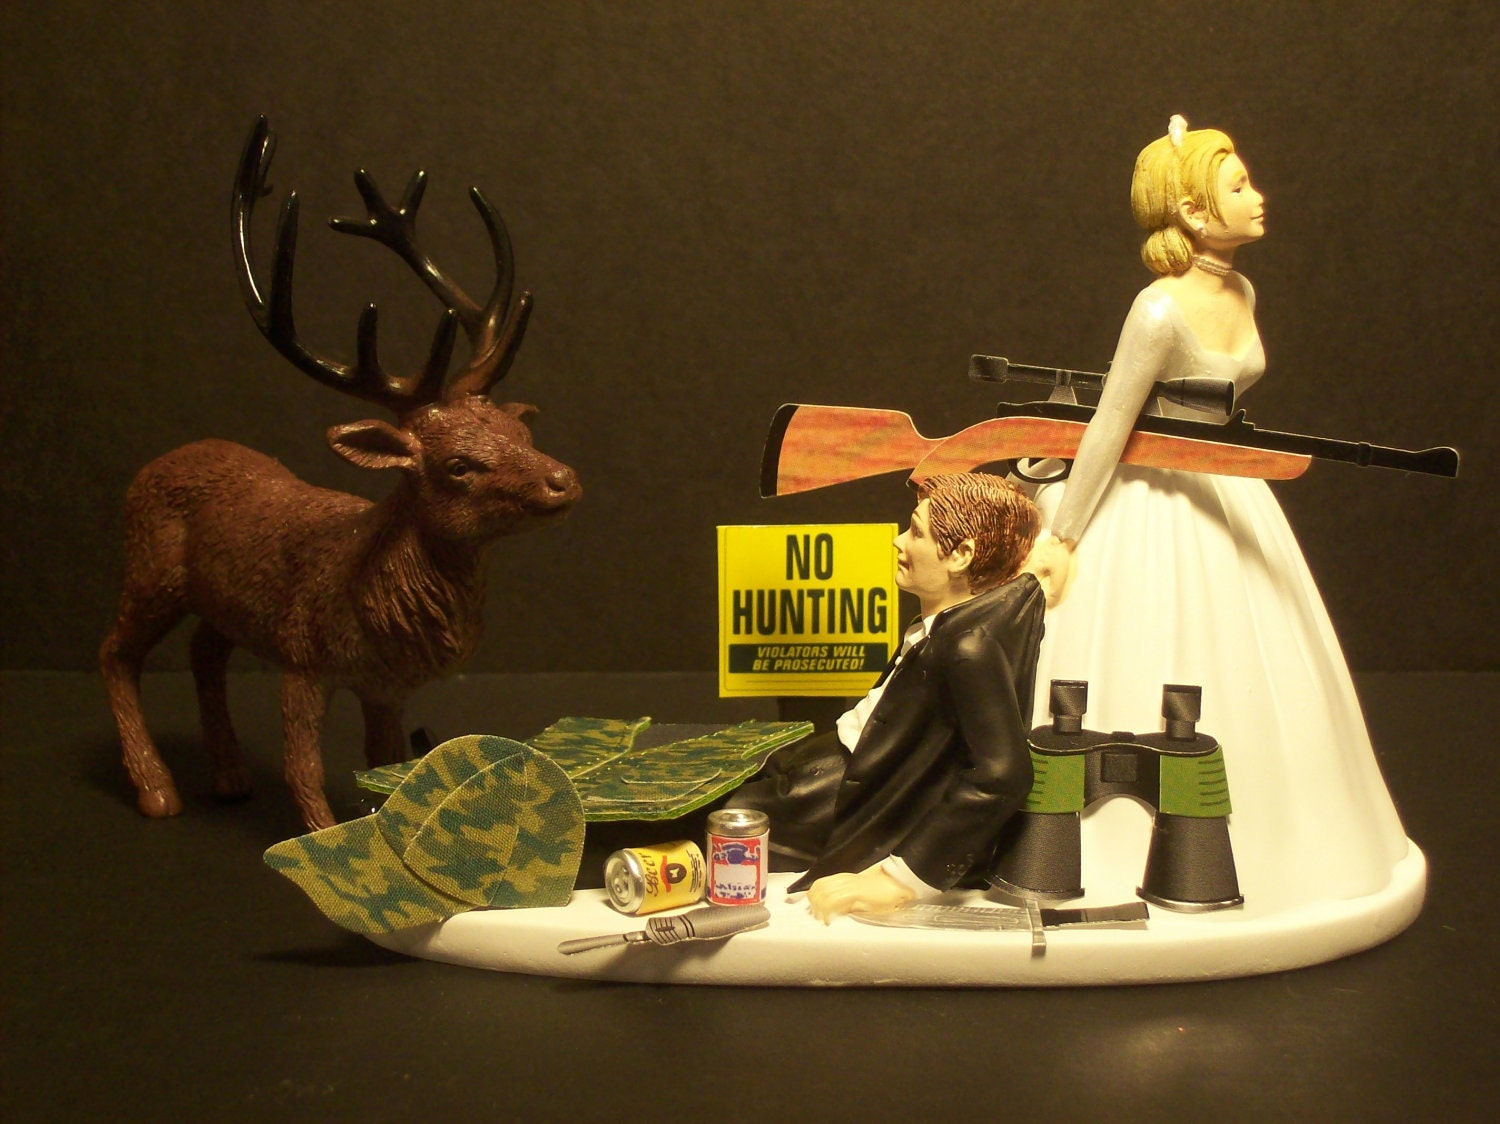 NO HUNTING DEER Bride And Groom Wedding Cake Topper By Mikeg1968